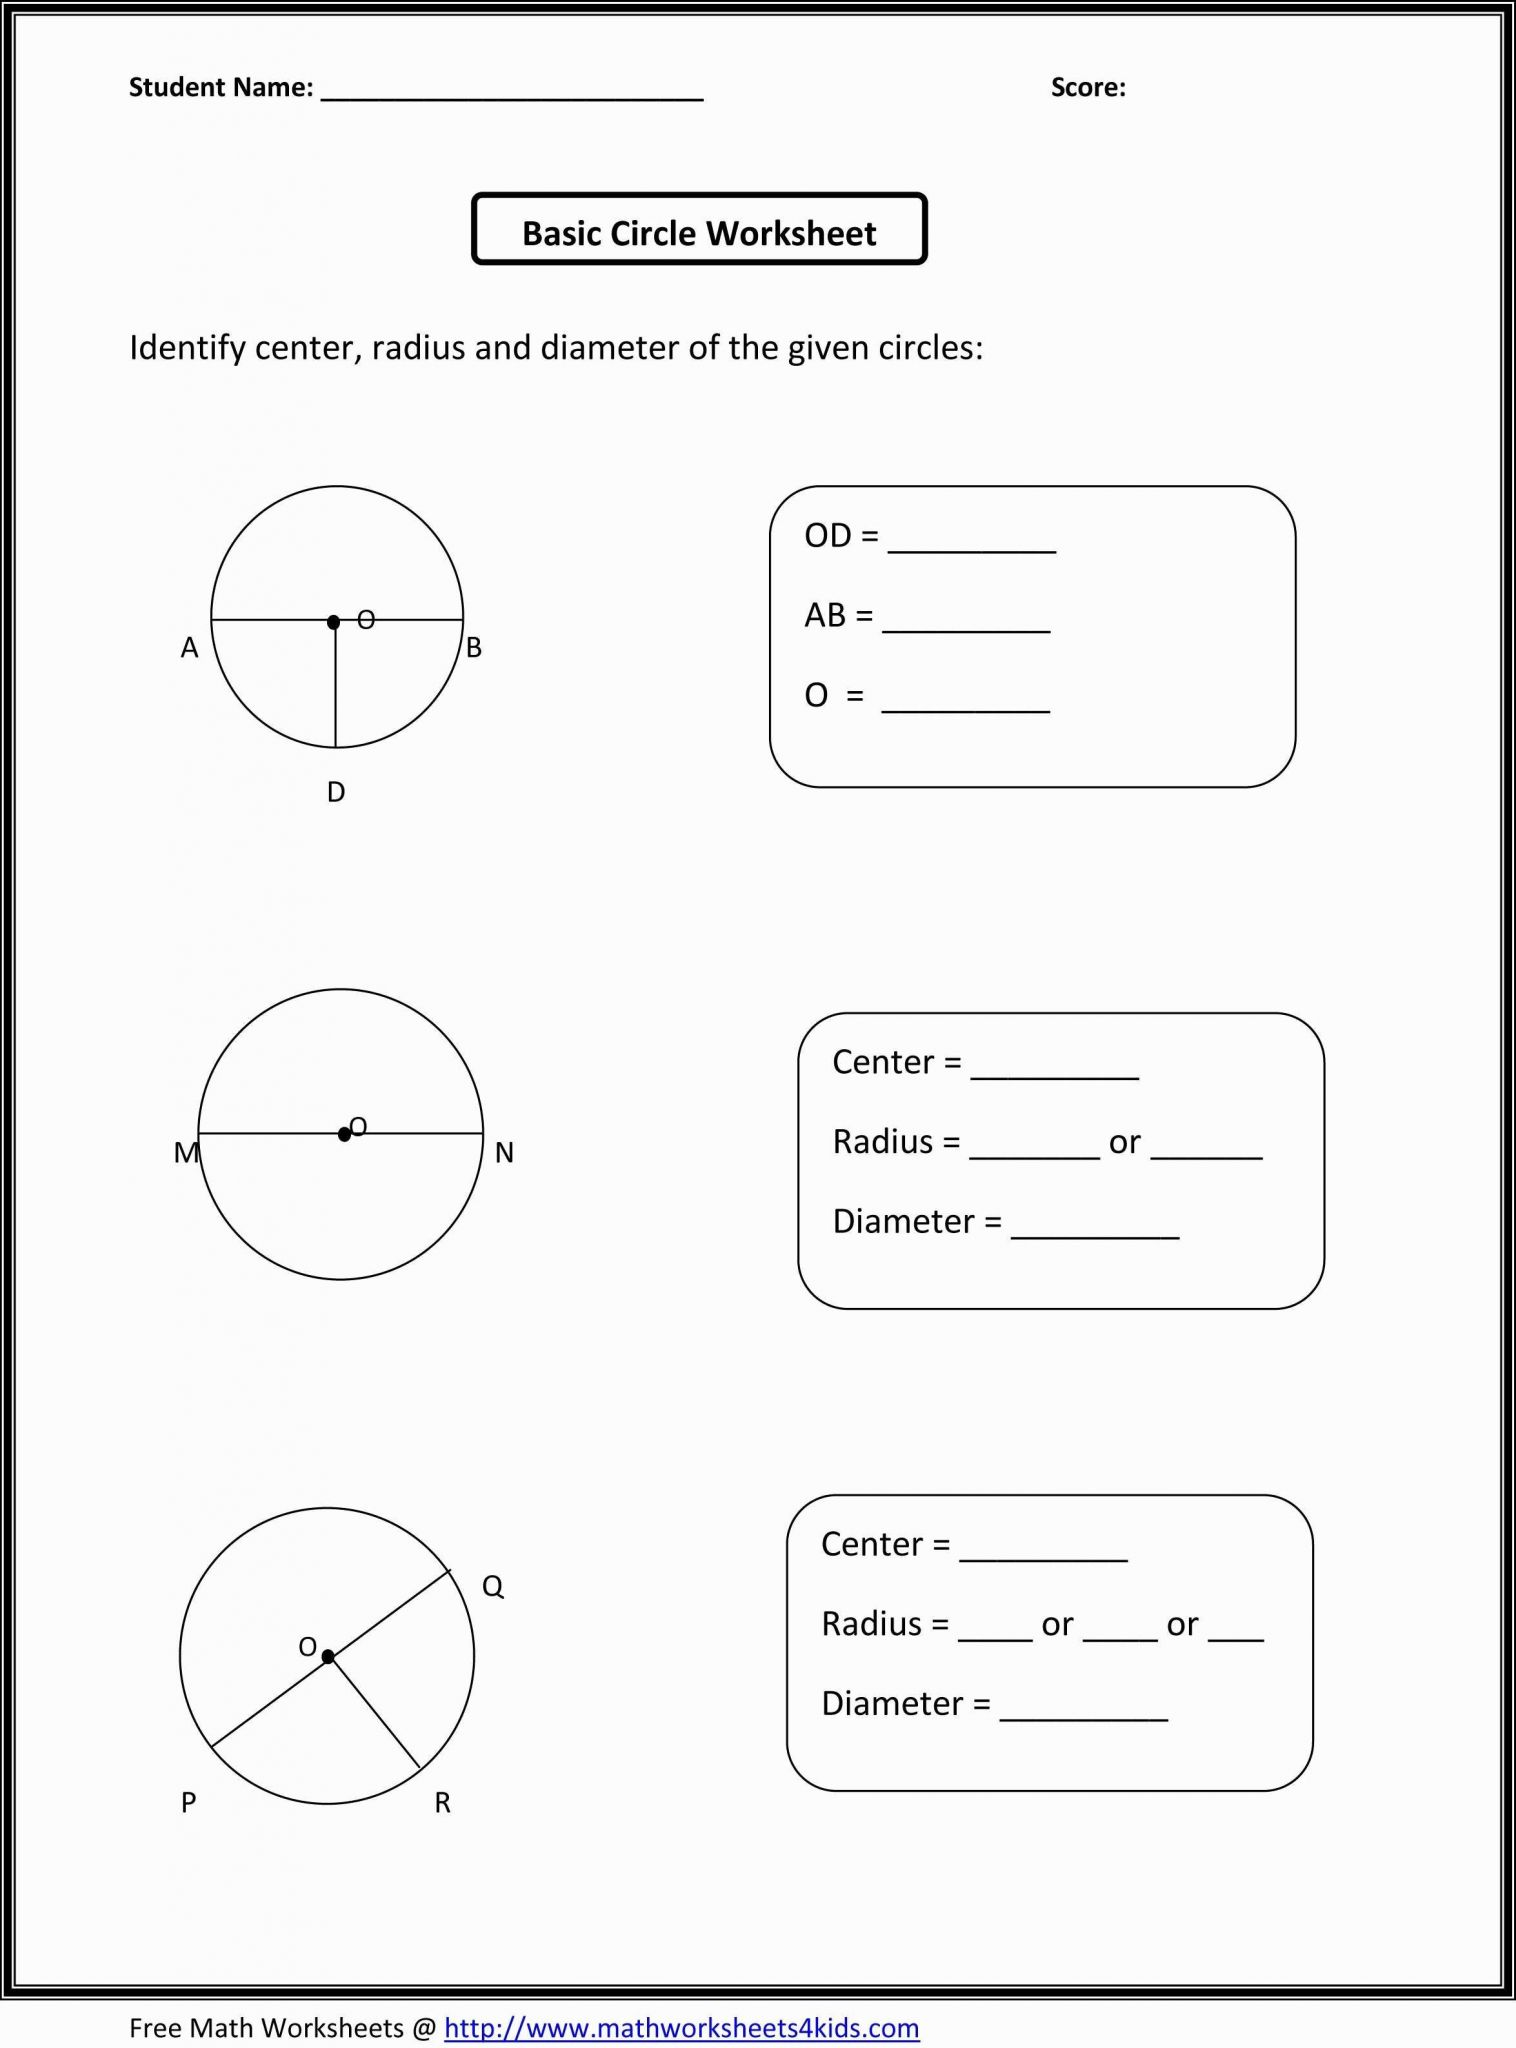 Graphing Using Intercepts Worksheet Answers